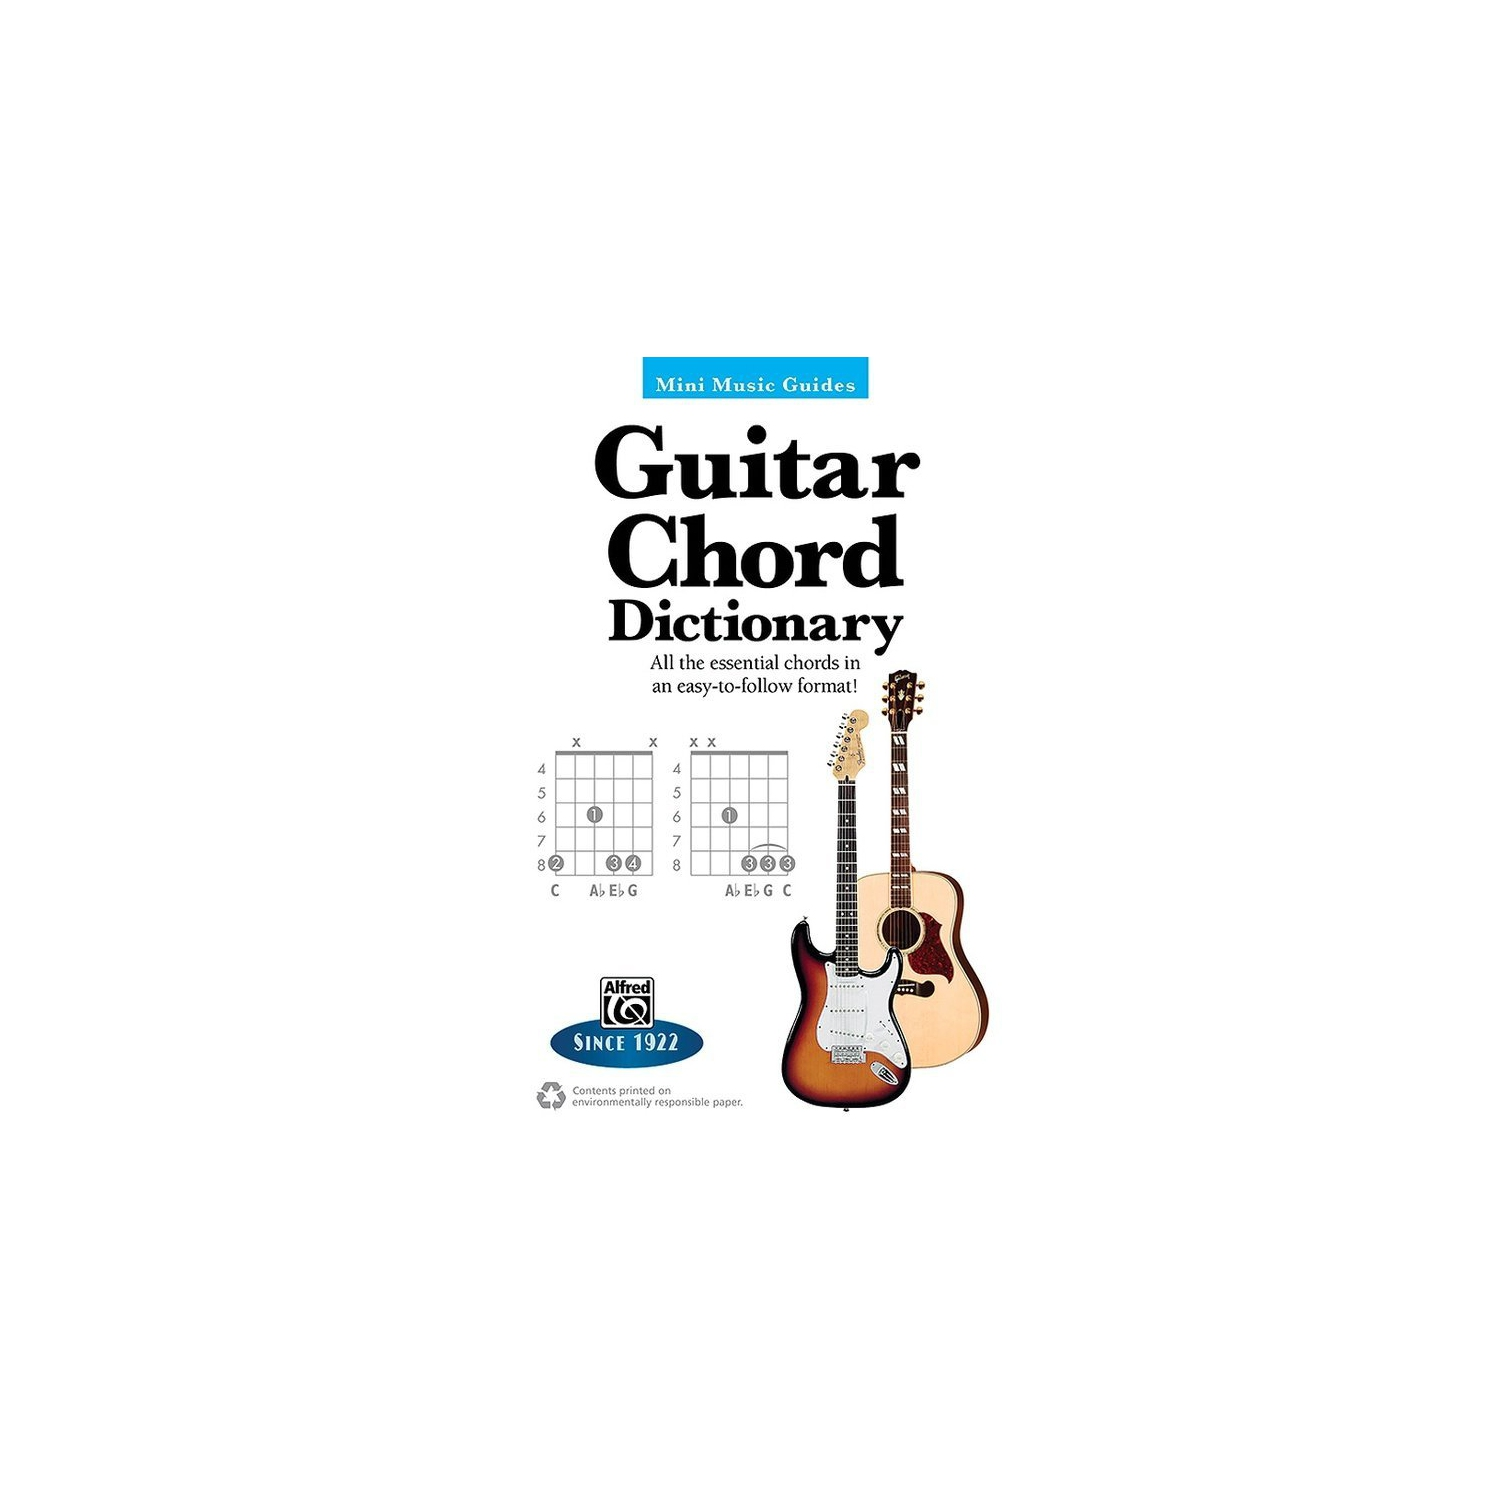 Alfred 00 33501 Mmg Guitar Chord Dictionary 5x7 Sheet Music